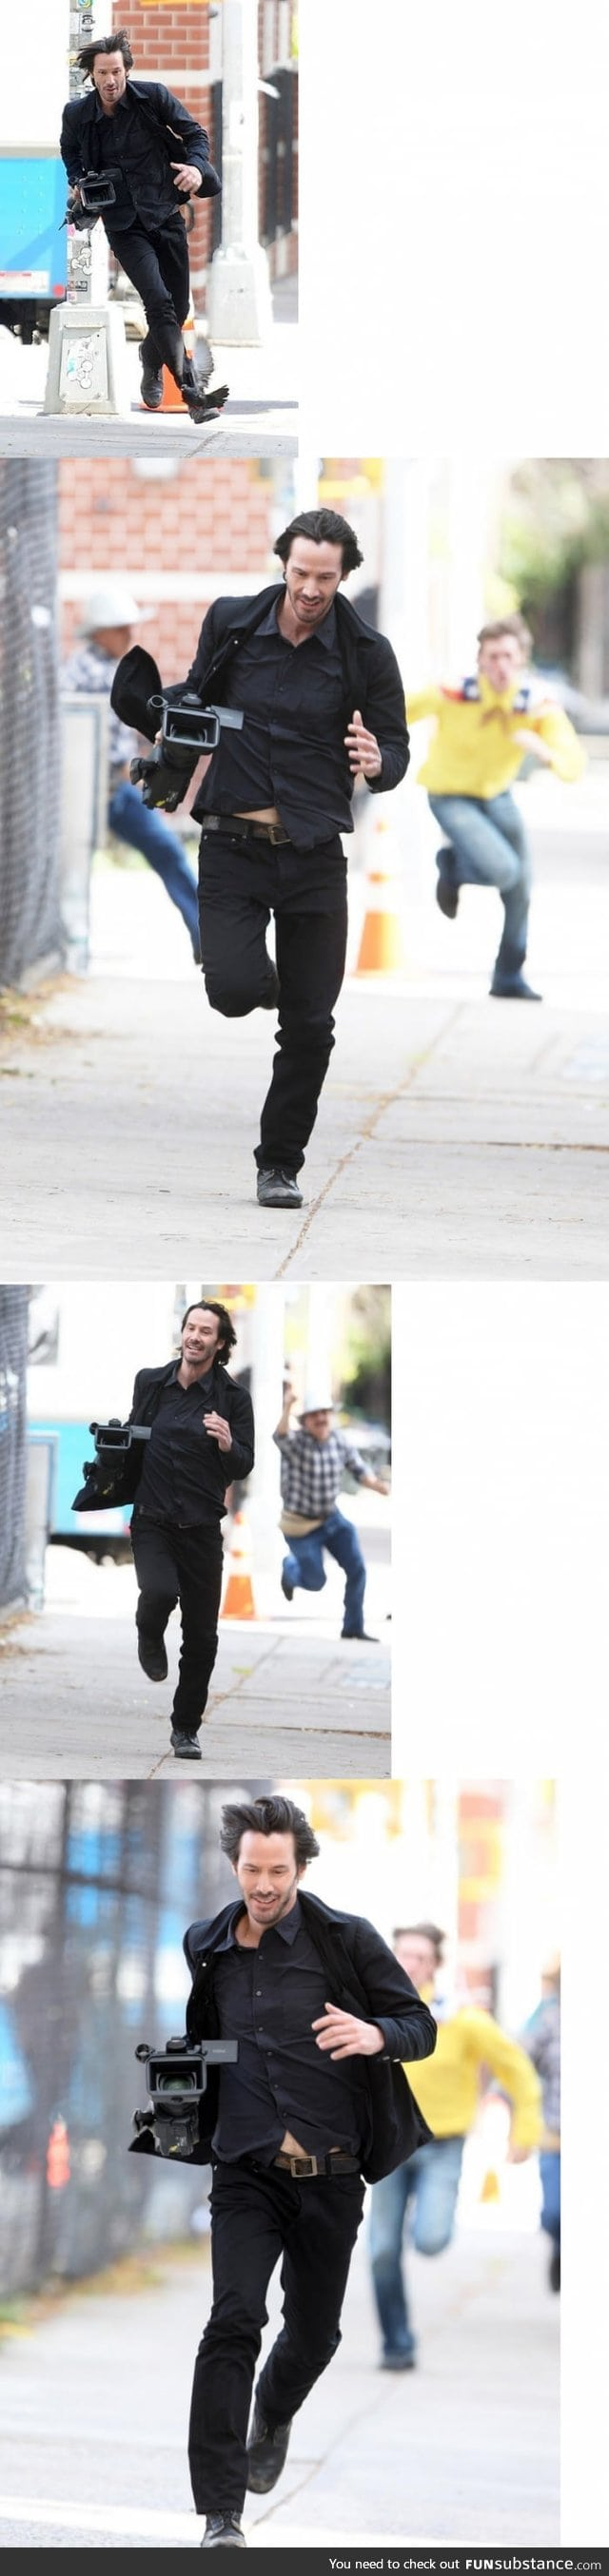 Keanu Reeves just casually running with paparazzi's camera